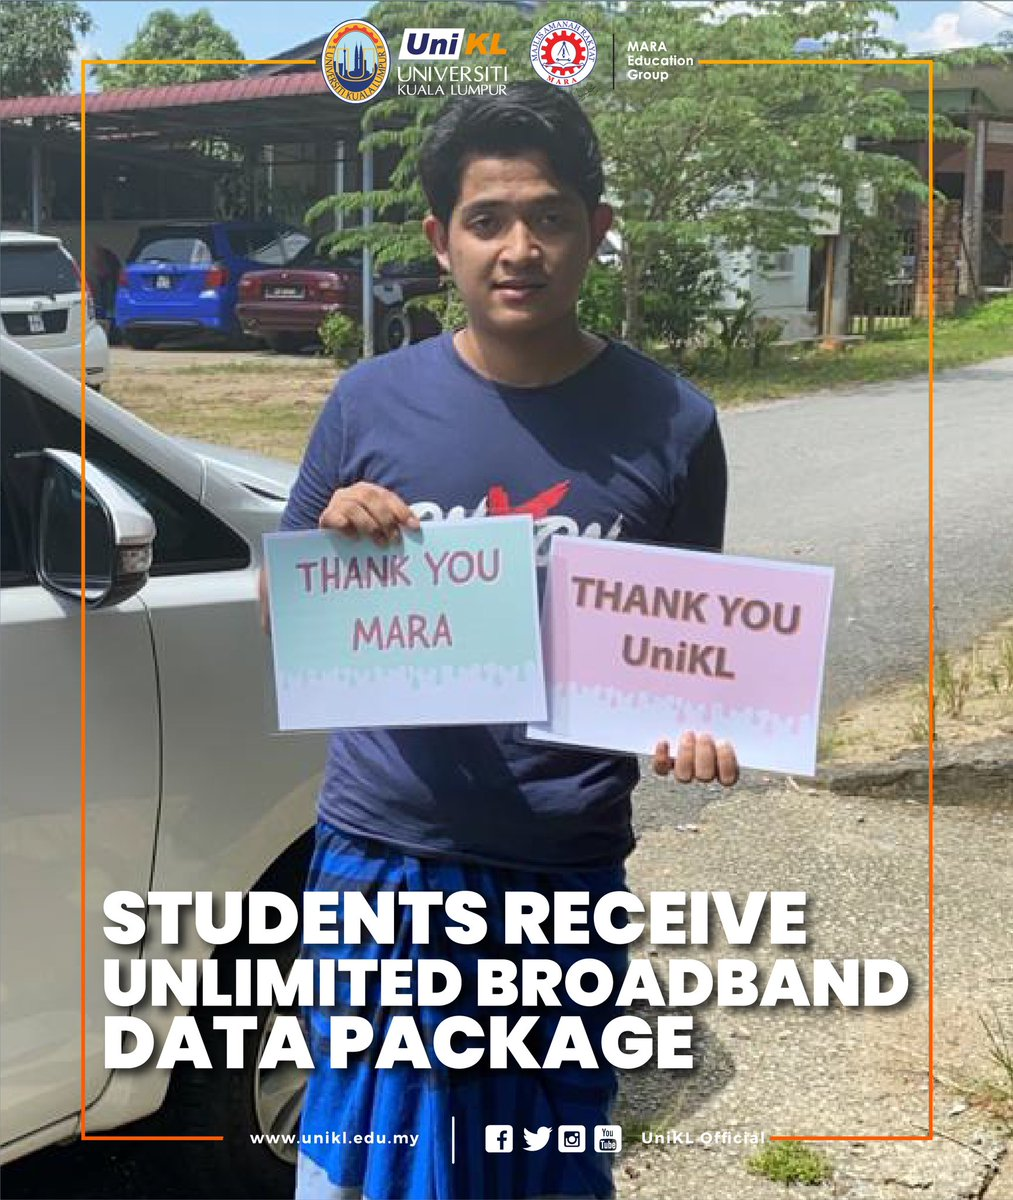 A total of 8,541 Universiti Kuala Lumpur students will receive free unlimited broadband data package sim cards within the next three days under the UniKL Beyond-C Business Challenge Plan. Read more at unikl.edu.my/students-recei… #UniKLDNA #UniKLnProud #WeAreUniKL #StrongerTogether